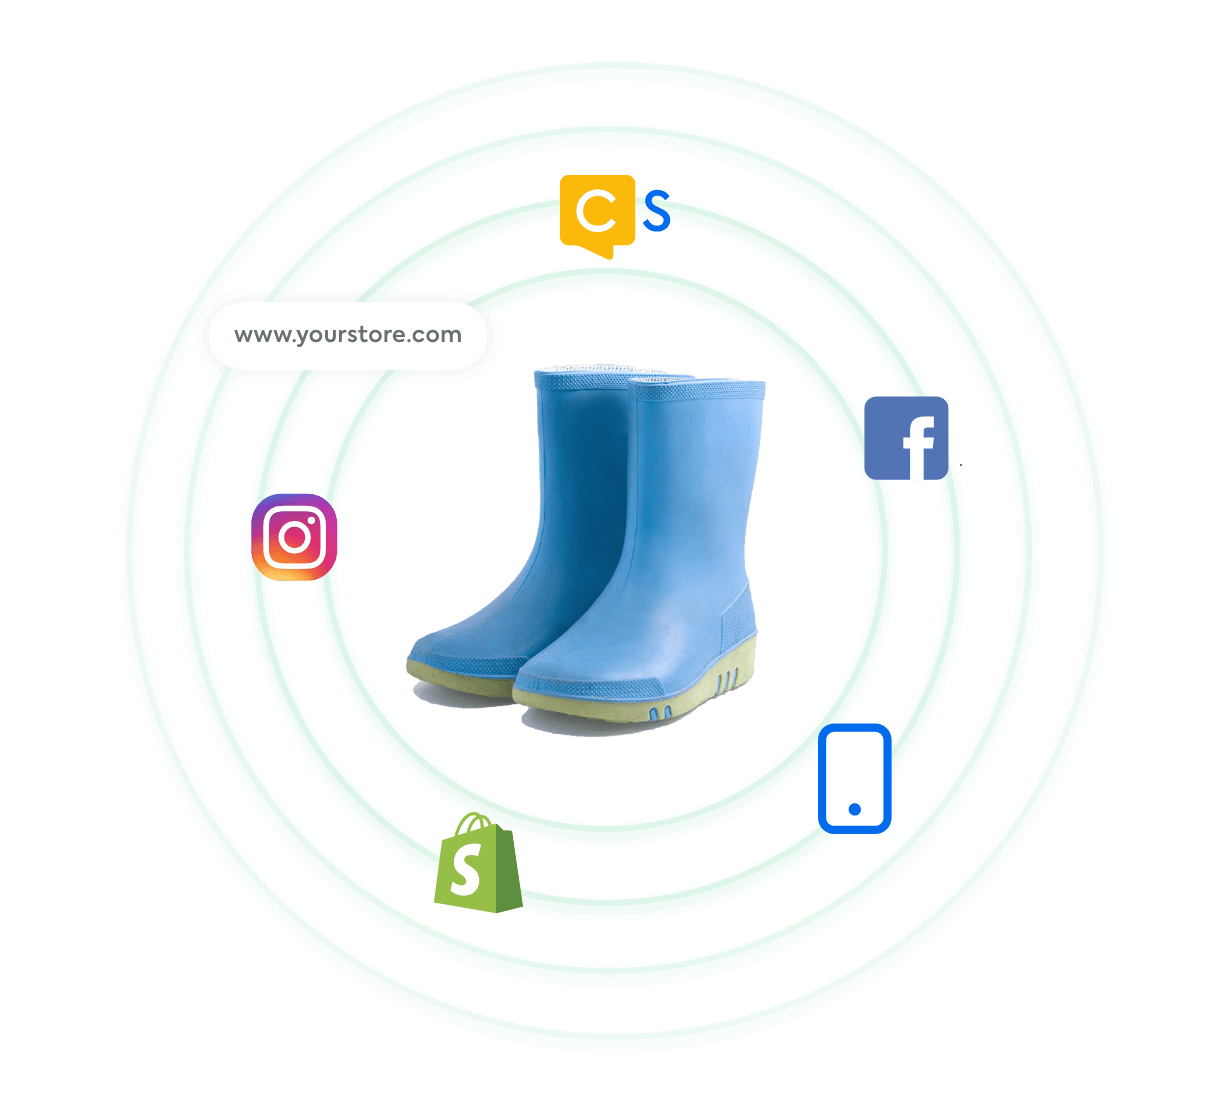 Boots surrounded by icons for Shopify, Instagram, website, CommentSold, Facebook, and mobile app